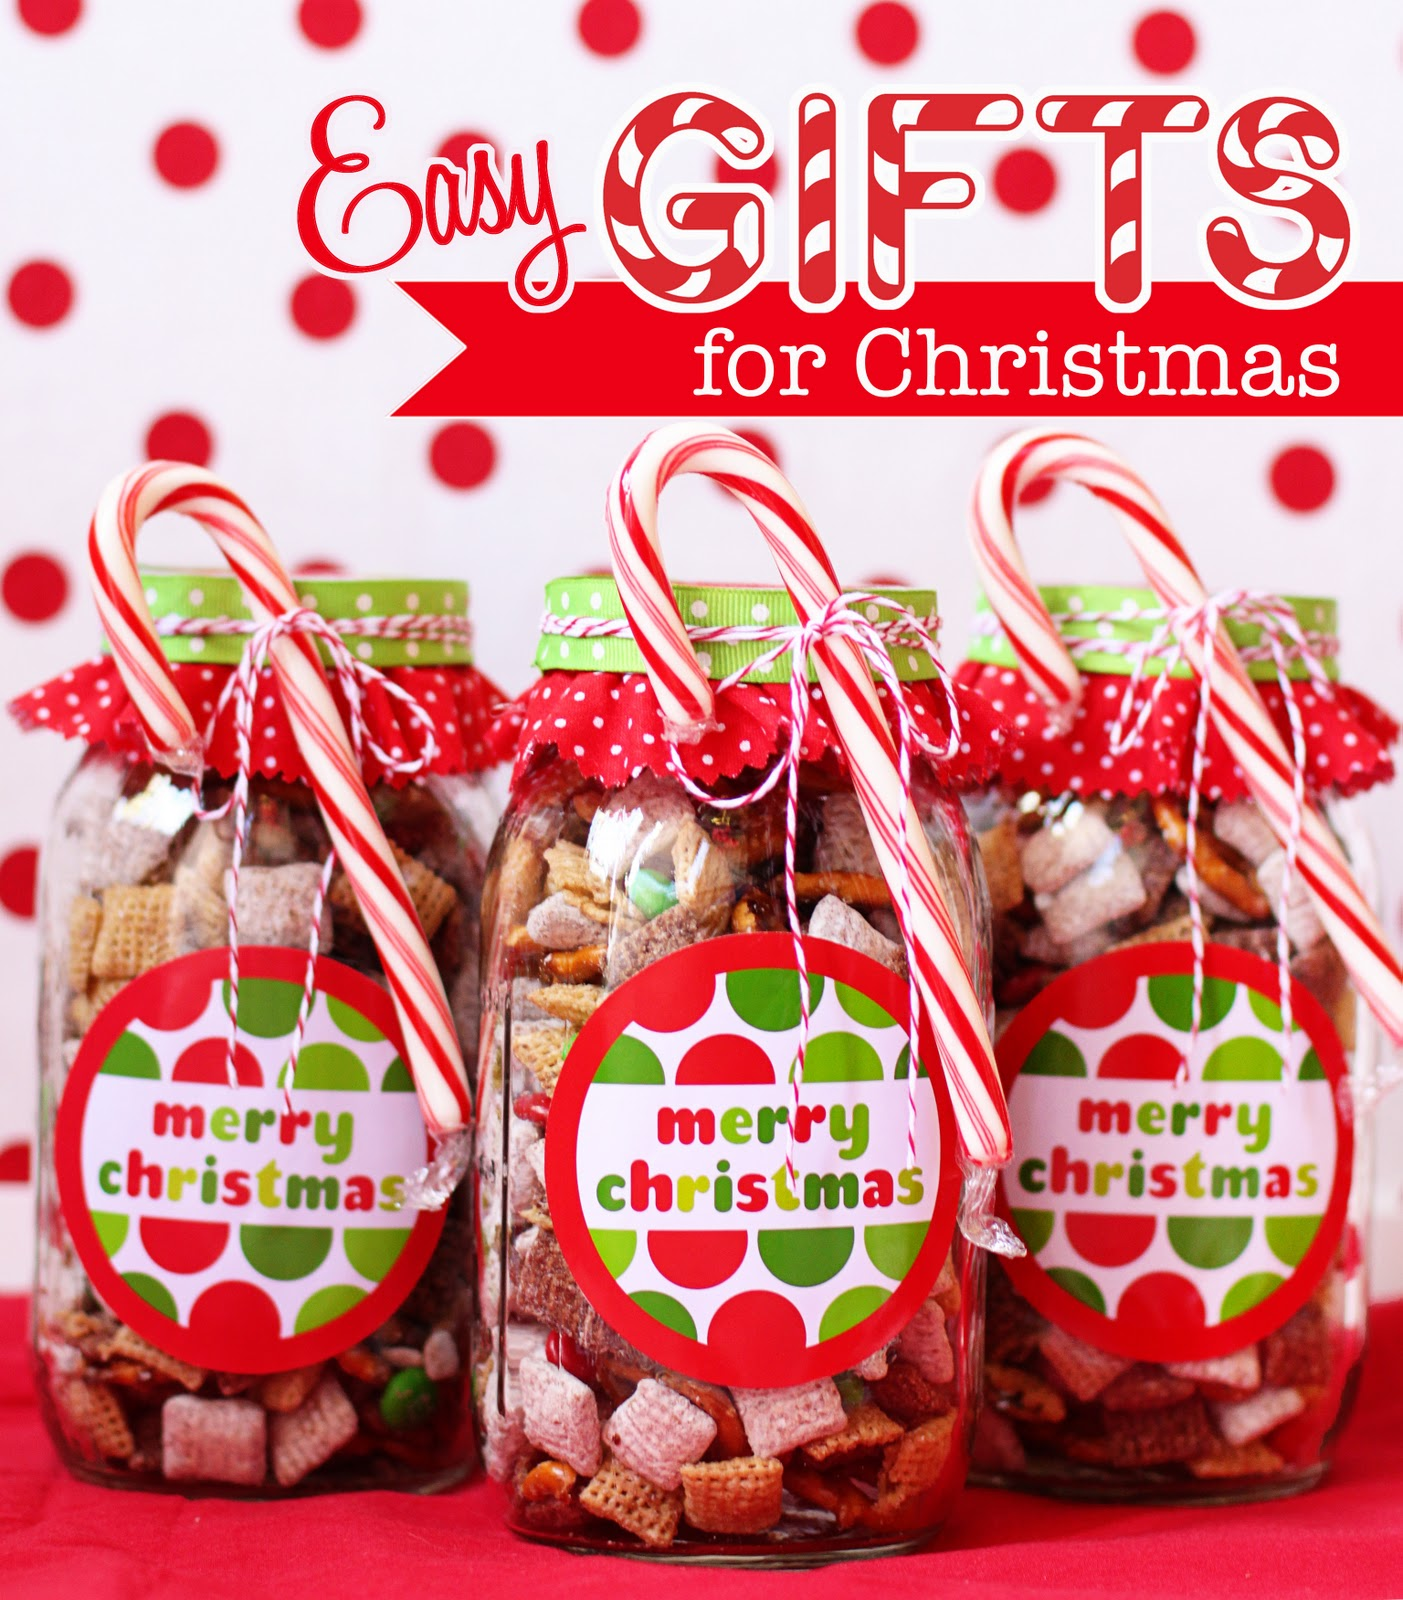 How To Make Handmade Chex Mix Holiday Gifts & Bonus Free Printable